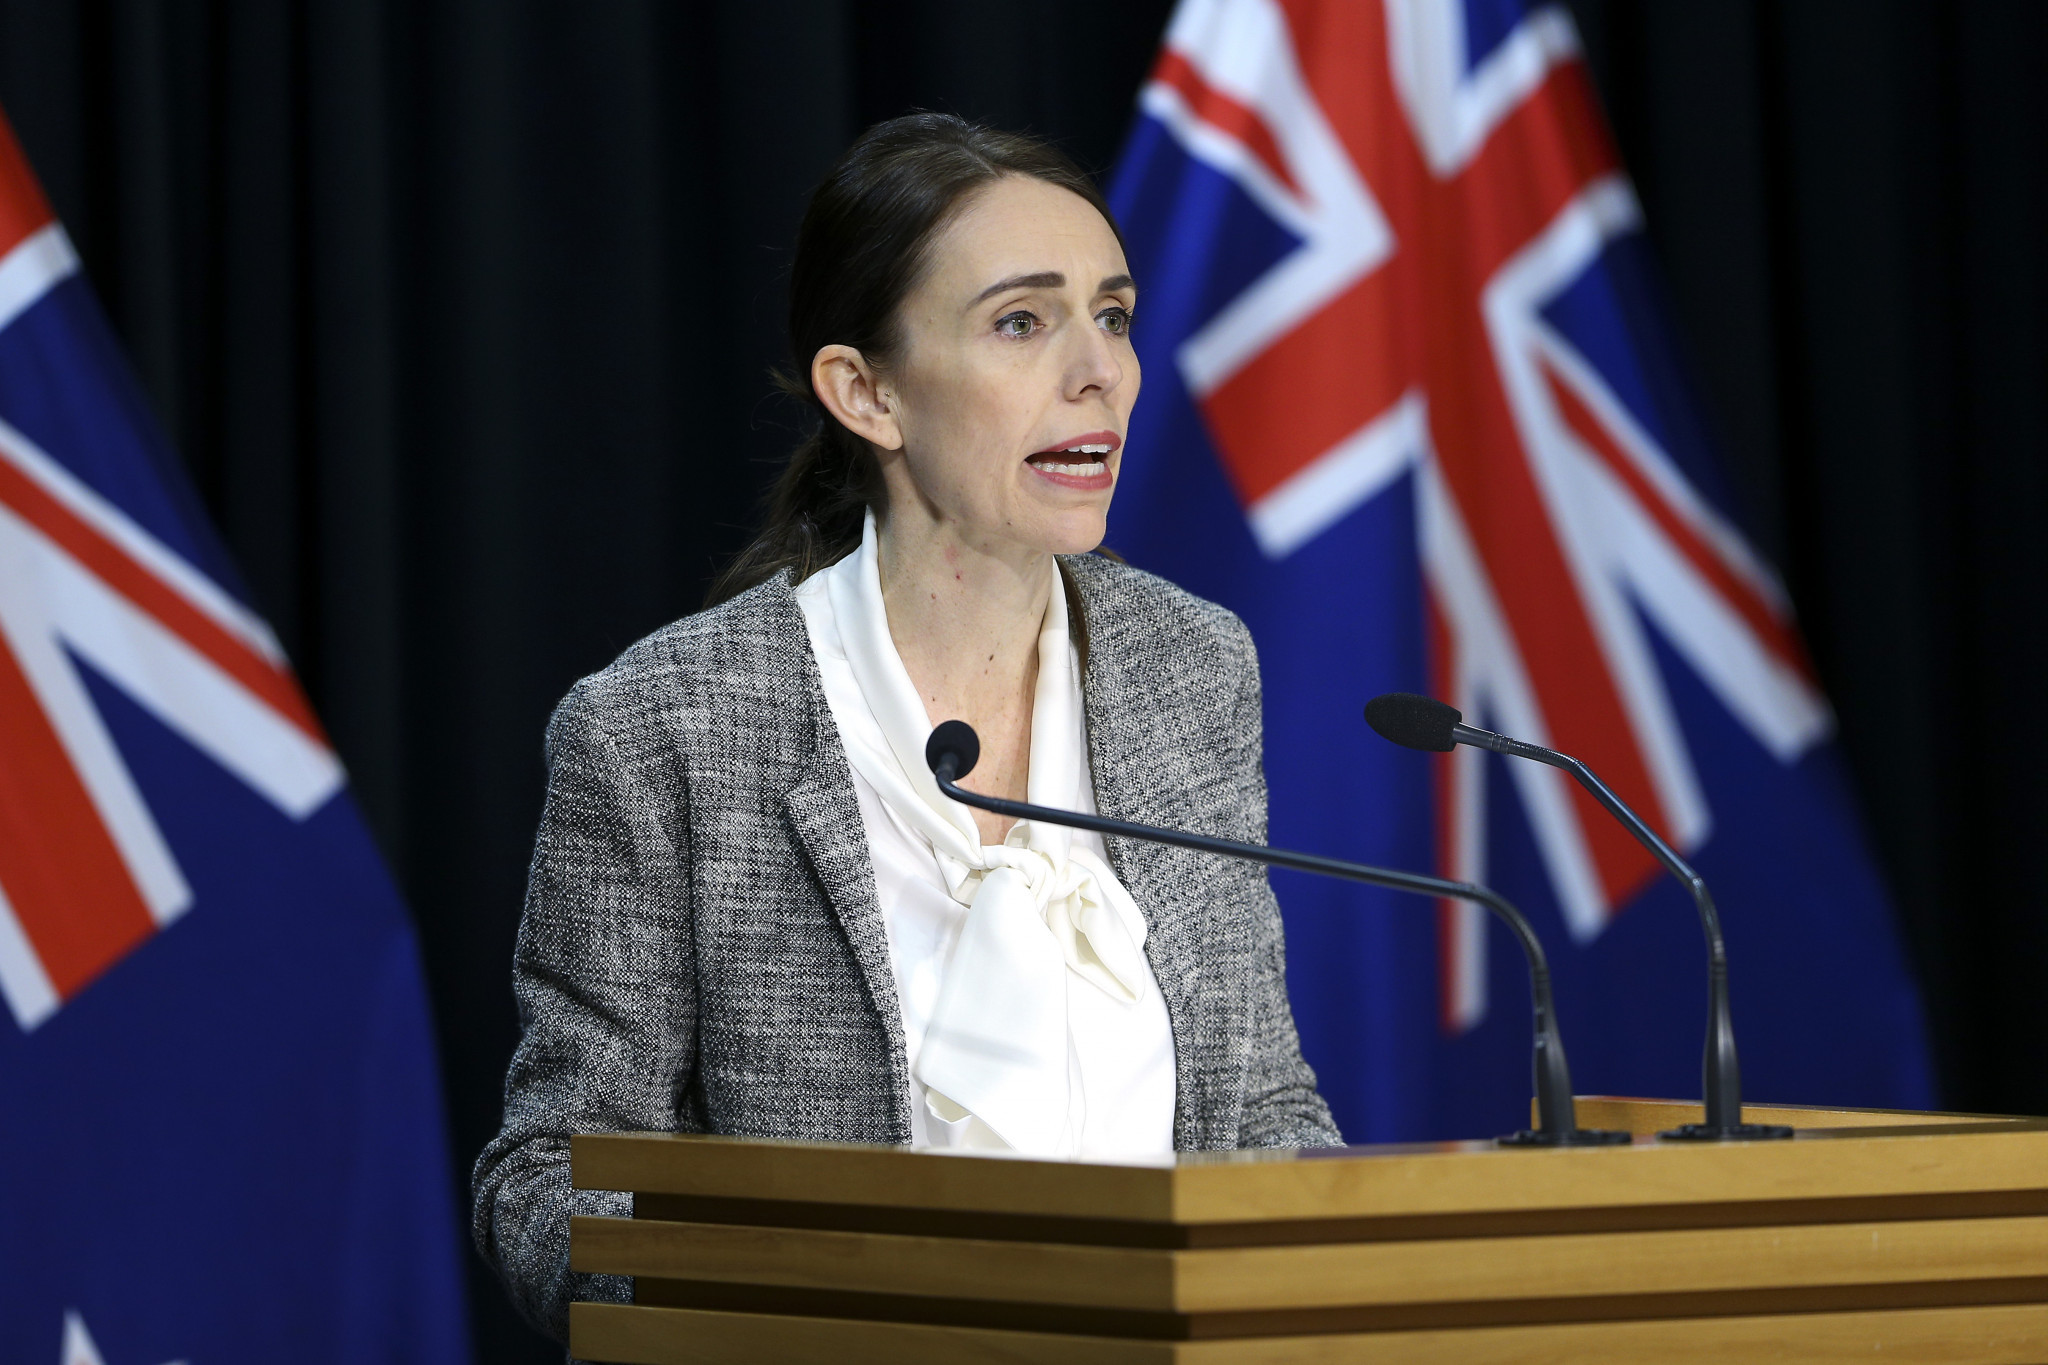 New Zealand's Prime Minister Jacinda Ardern wrote a joint letter with Australian Prime Minister Scott Morrison to the FIFA Council ©Getty Images